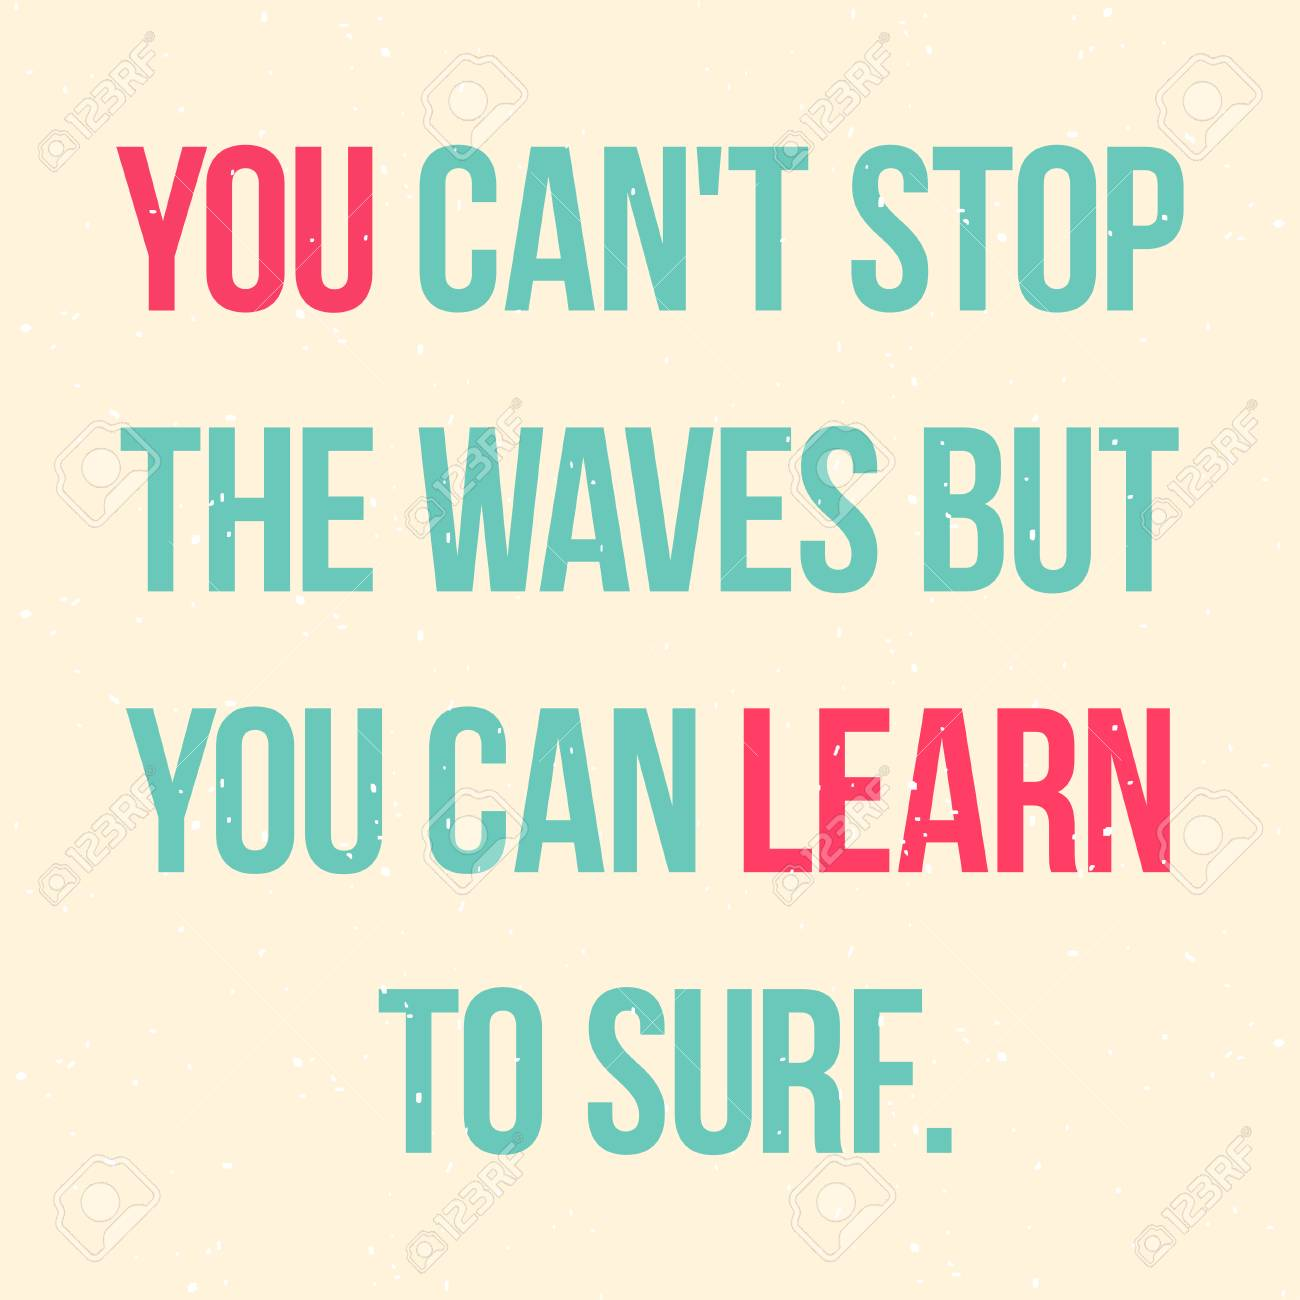 Placard But Motivational Placard For Surfers Poster Design With Quote You